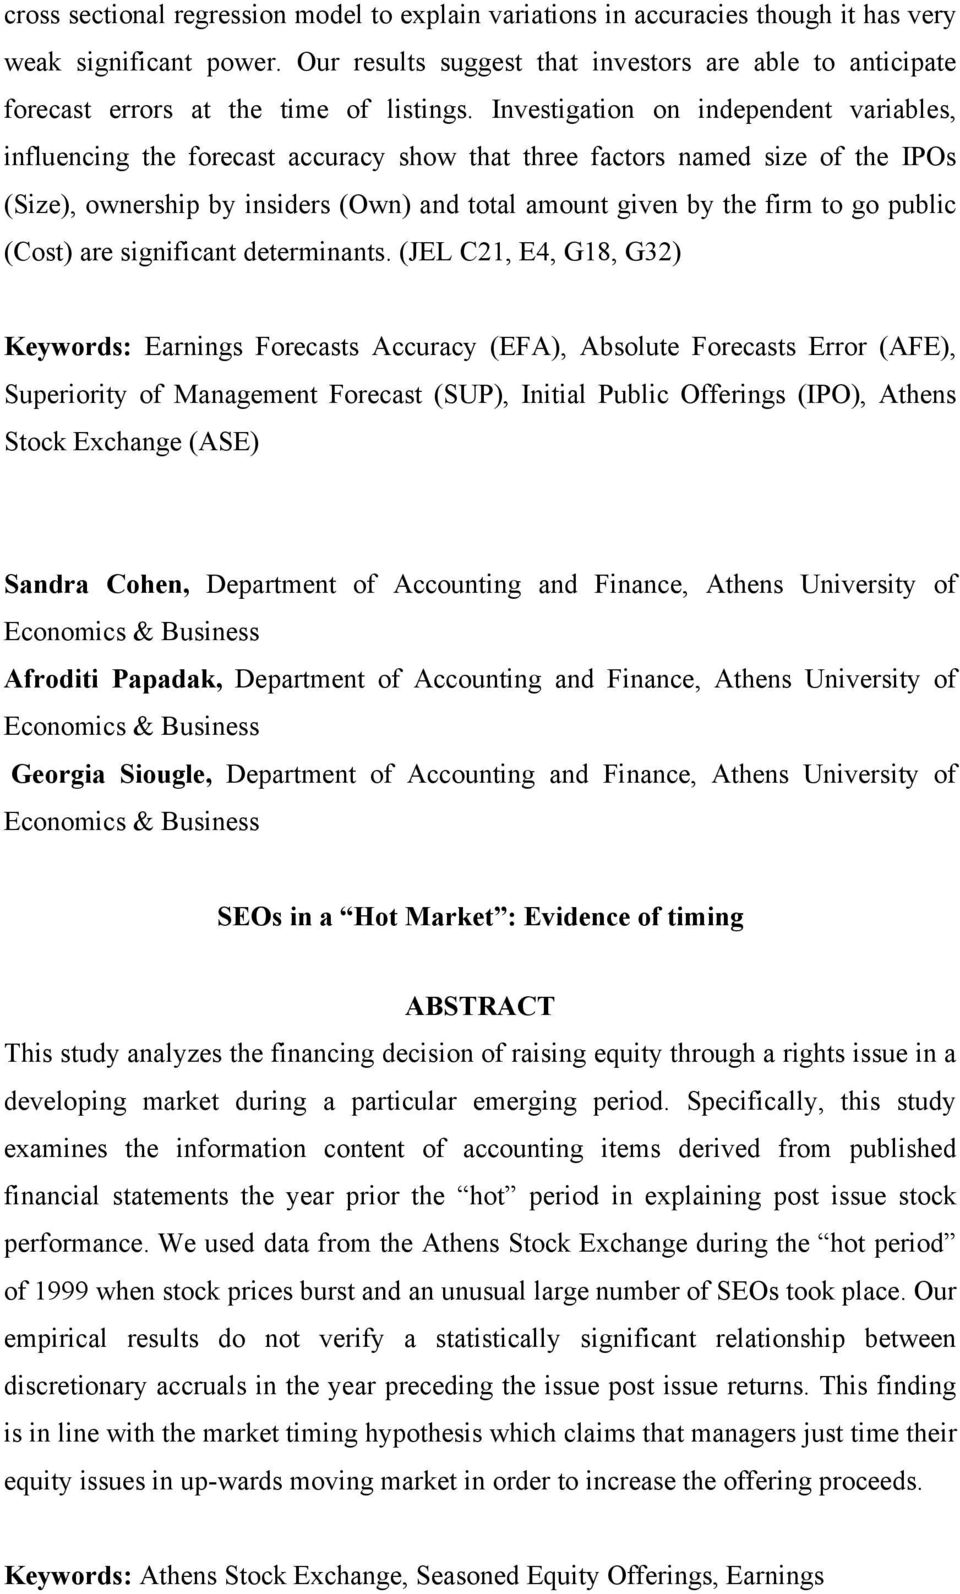 Investigation on independent variables, influencing the forecast accuracy show that three factors named size of the IPOs (Size), ownership by insiders (Own) and total amount given by the firm to go